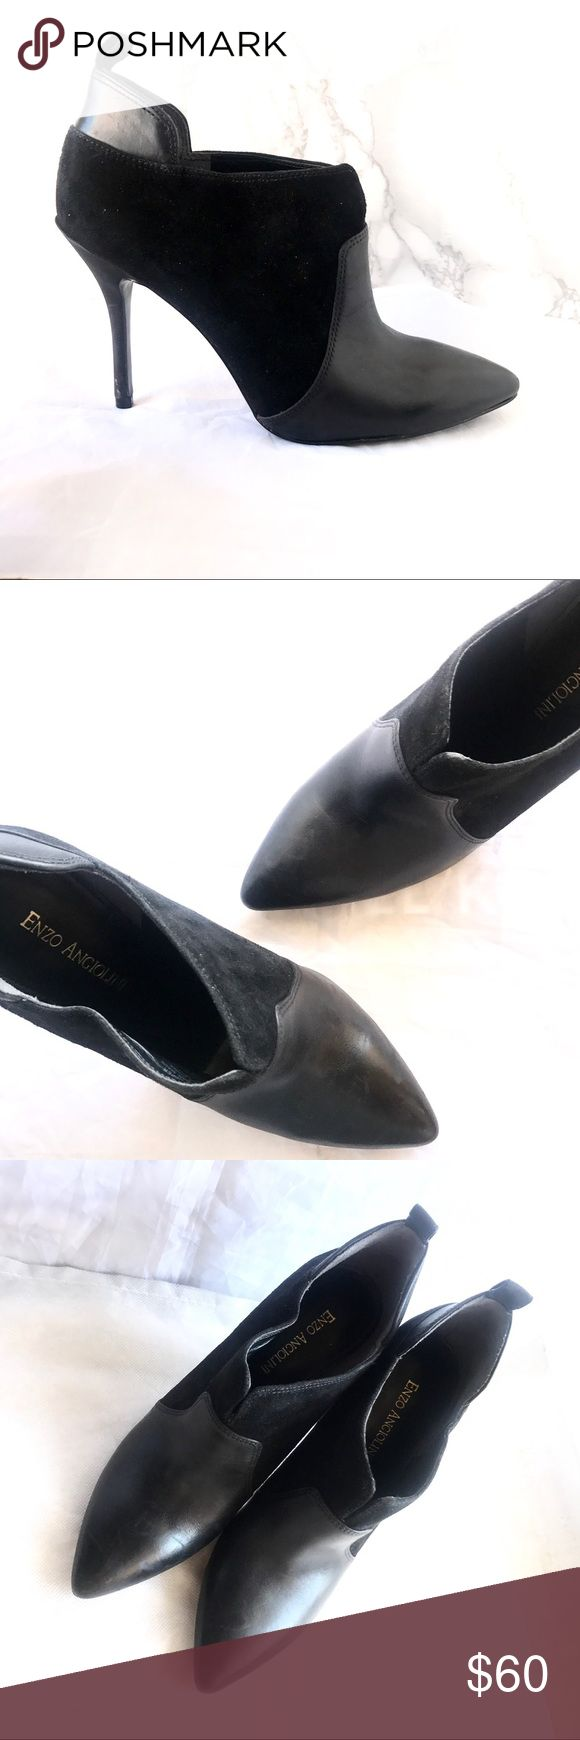 "Enzo Angiolini Booties Almost like new gently used preloved Enzo Angiolini black suede booties; heel height approx. 3""in; super comfortable sleek and stylish! Great as Office attire or a night out! Enzo Angiolini Shoes Ankle Boots & Booties"